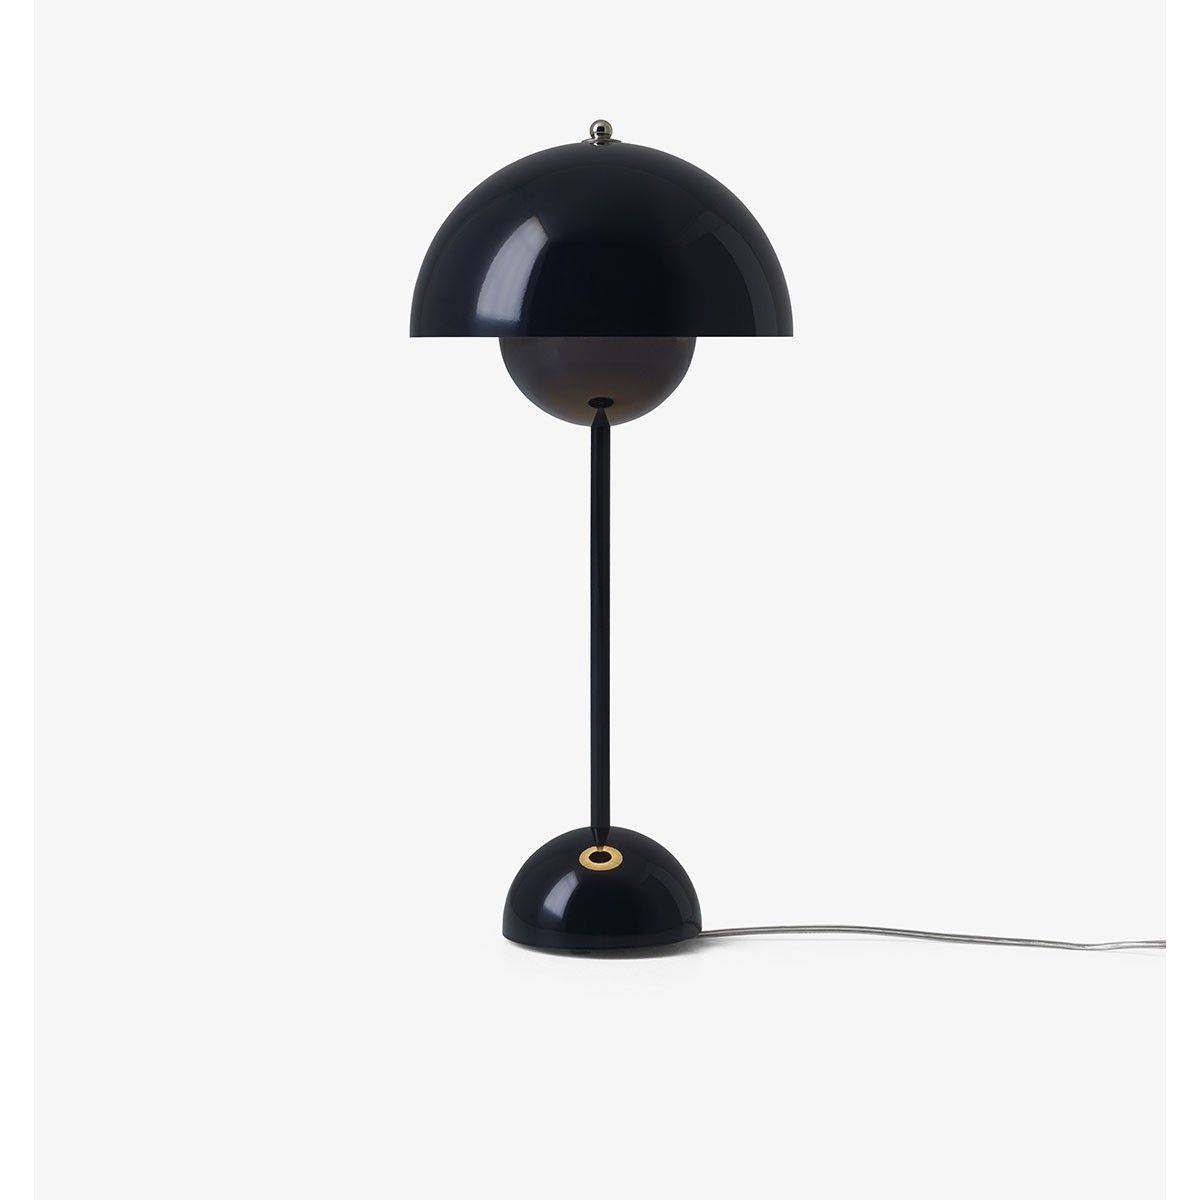 Lampe A Poser Flowerpot Bleu Noir By Verner Panton And Tradition Lamp Flower Pots Verner Panton